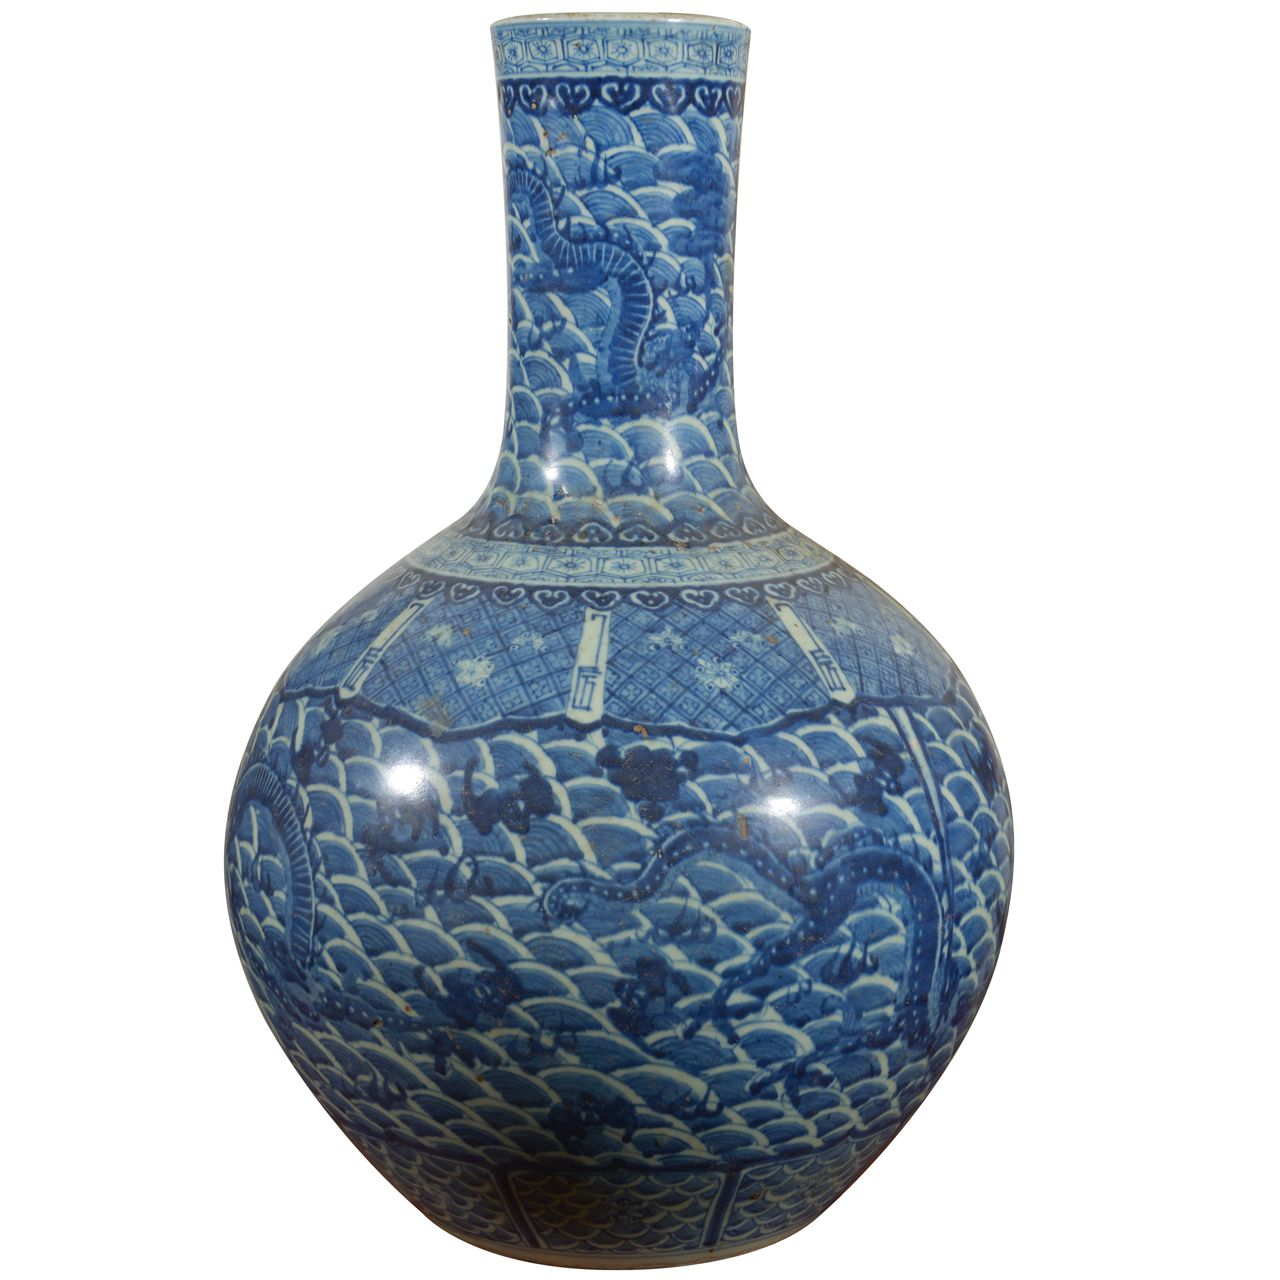 Large Antique Blue and White Dragon Vase | From a unique collection of antique and modern vases at https://www.1stdibs.com/furniture/dining-entertaining/vases/ PLACE OF ORIGIN:	China DATE OF MANUFACTURE:	early 20th century PERIOD:	20th Century MATERIALS AND TECHNIQUES:	Glazed, Chinese ceramic, Paint.